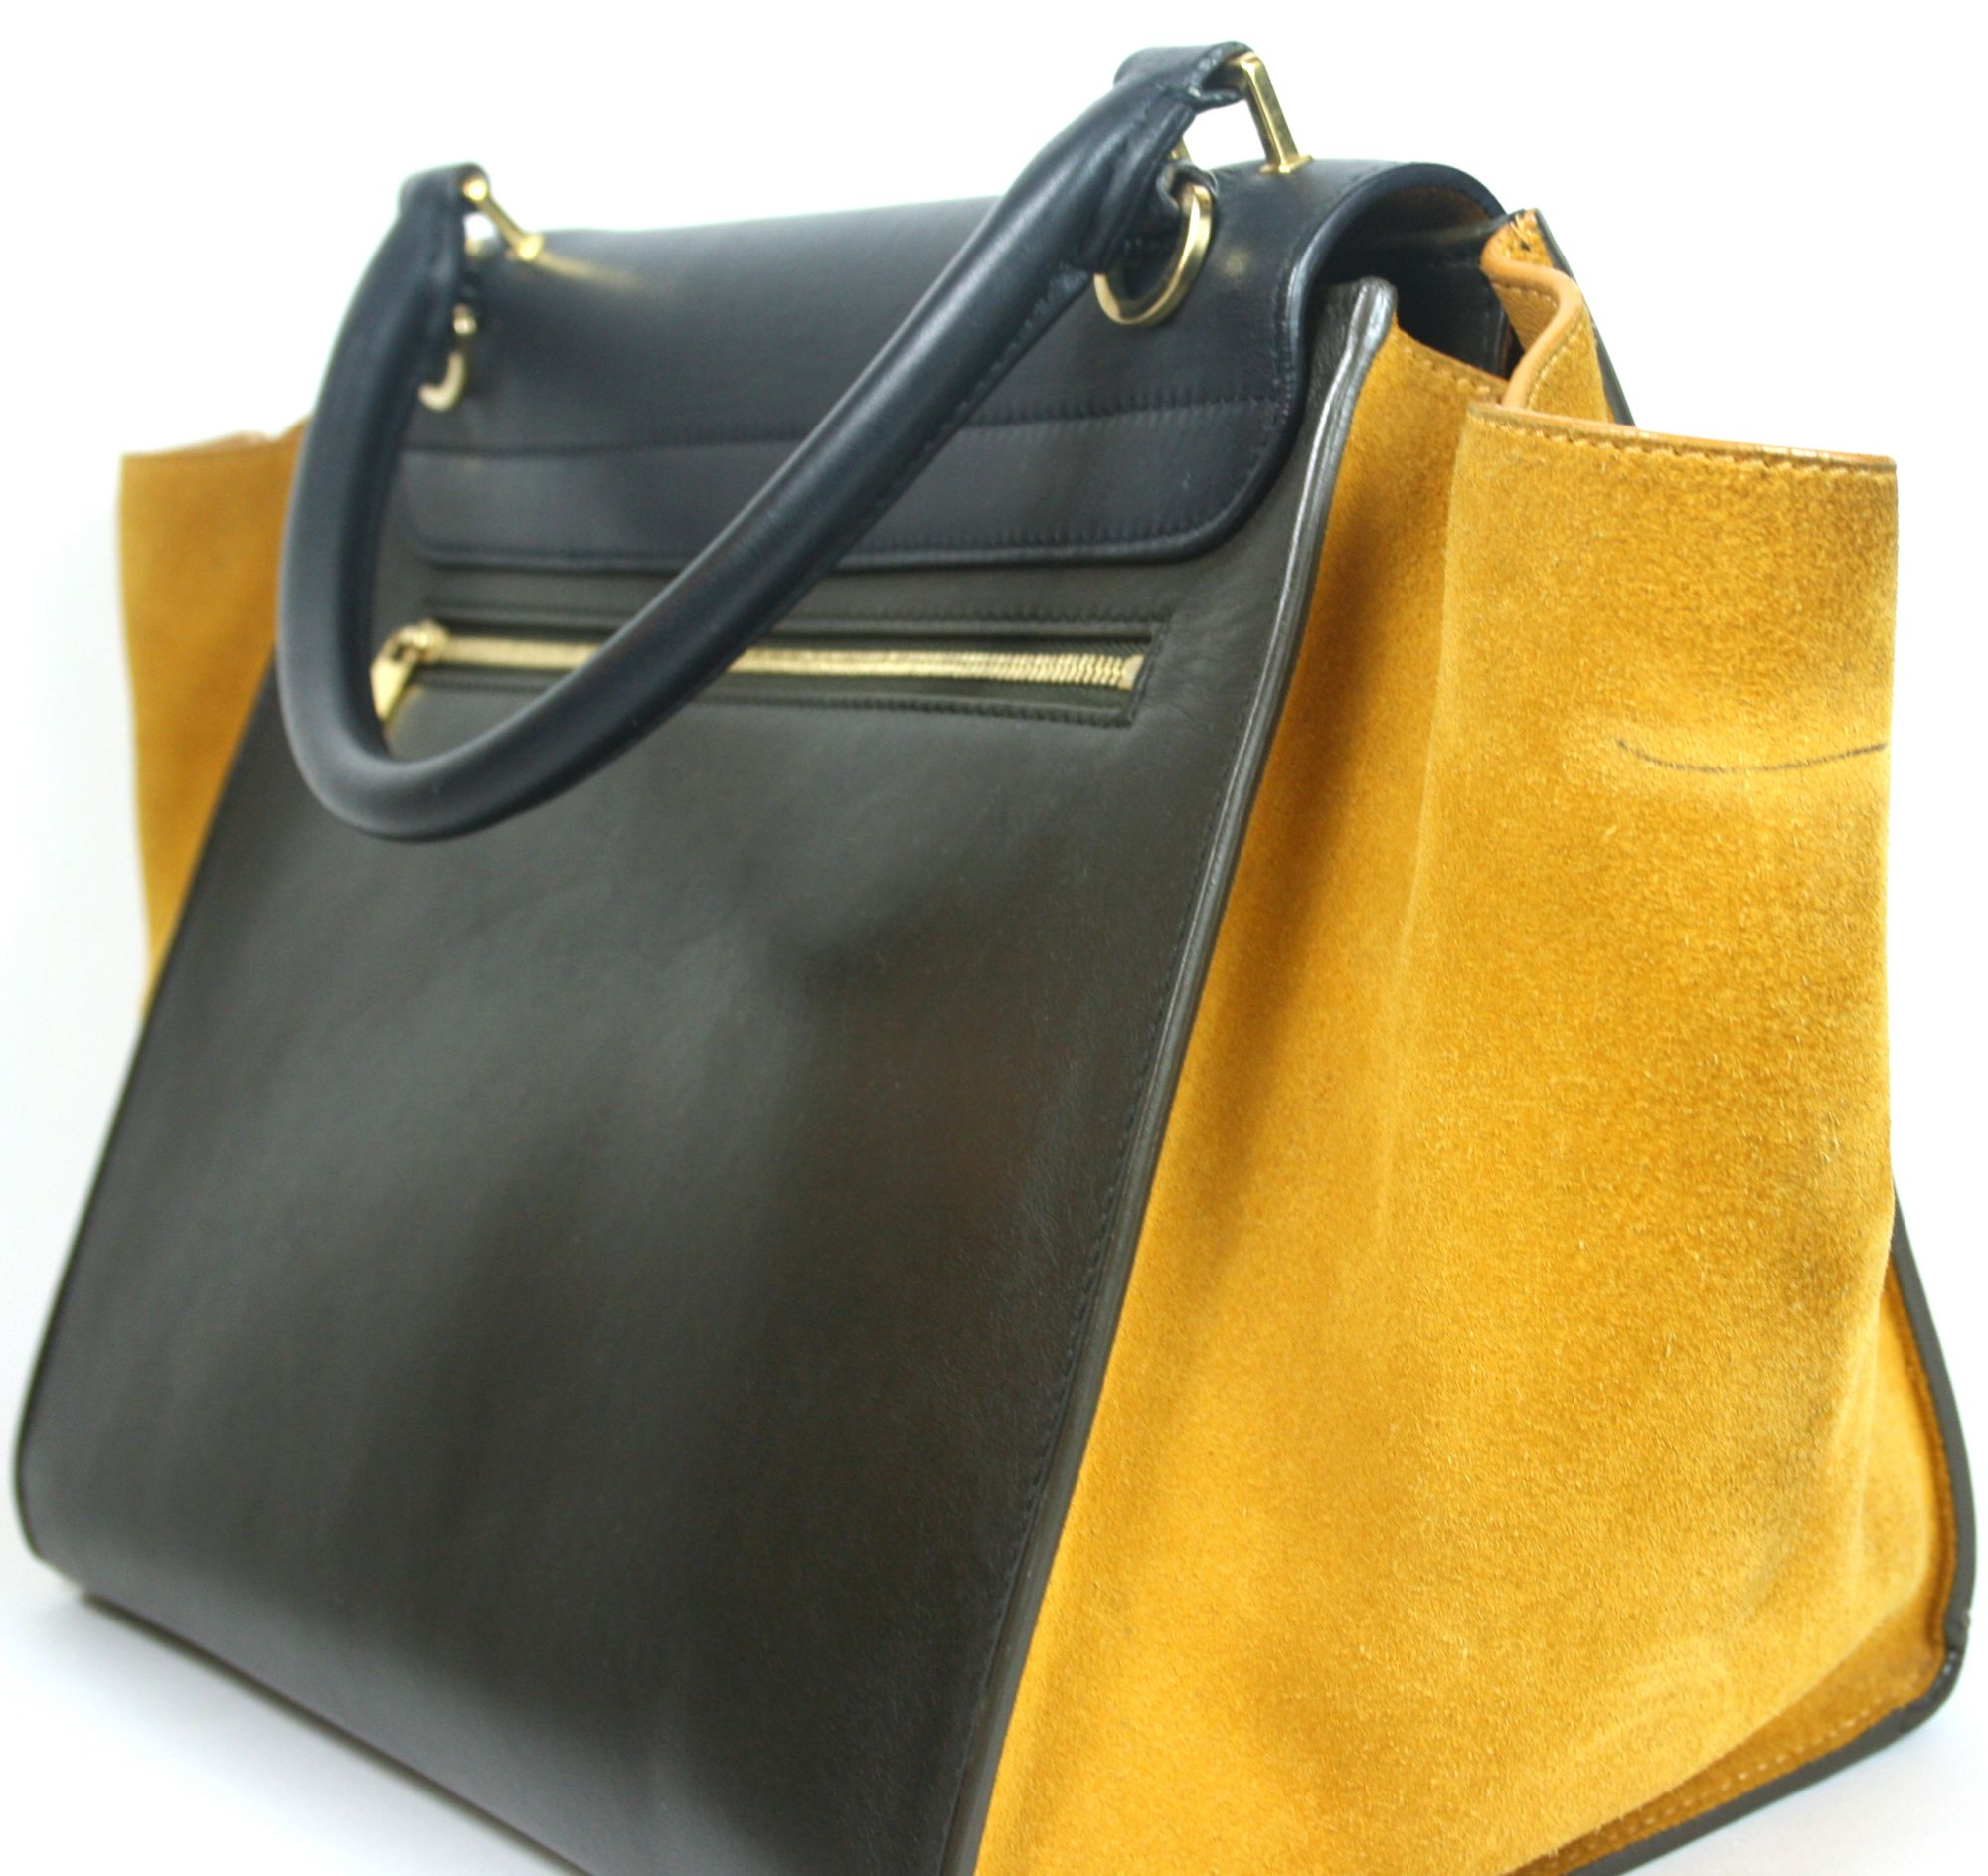 Tricolor Leather and Suede Medium Trapeze Bag